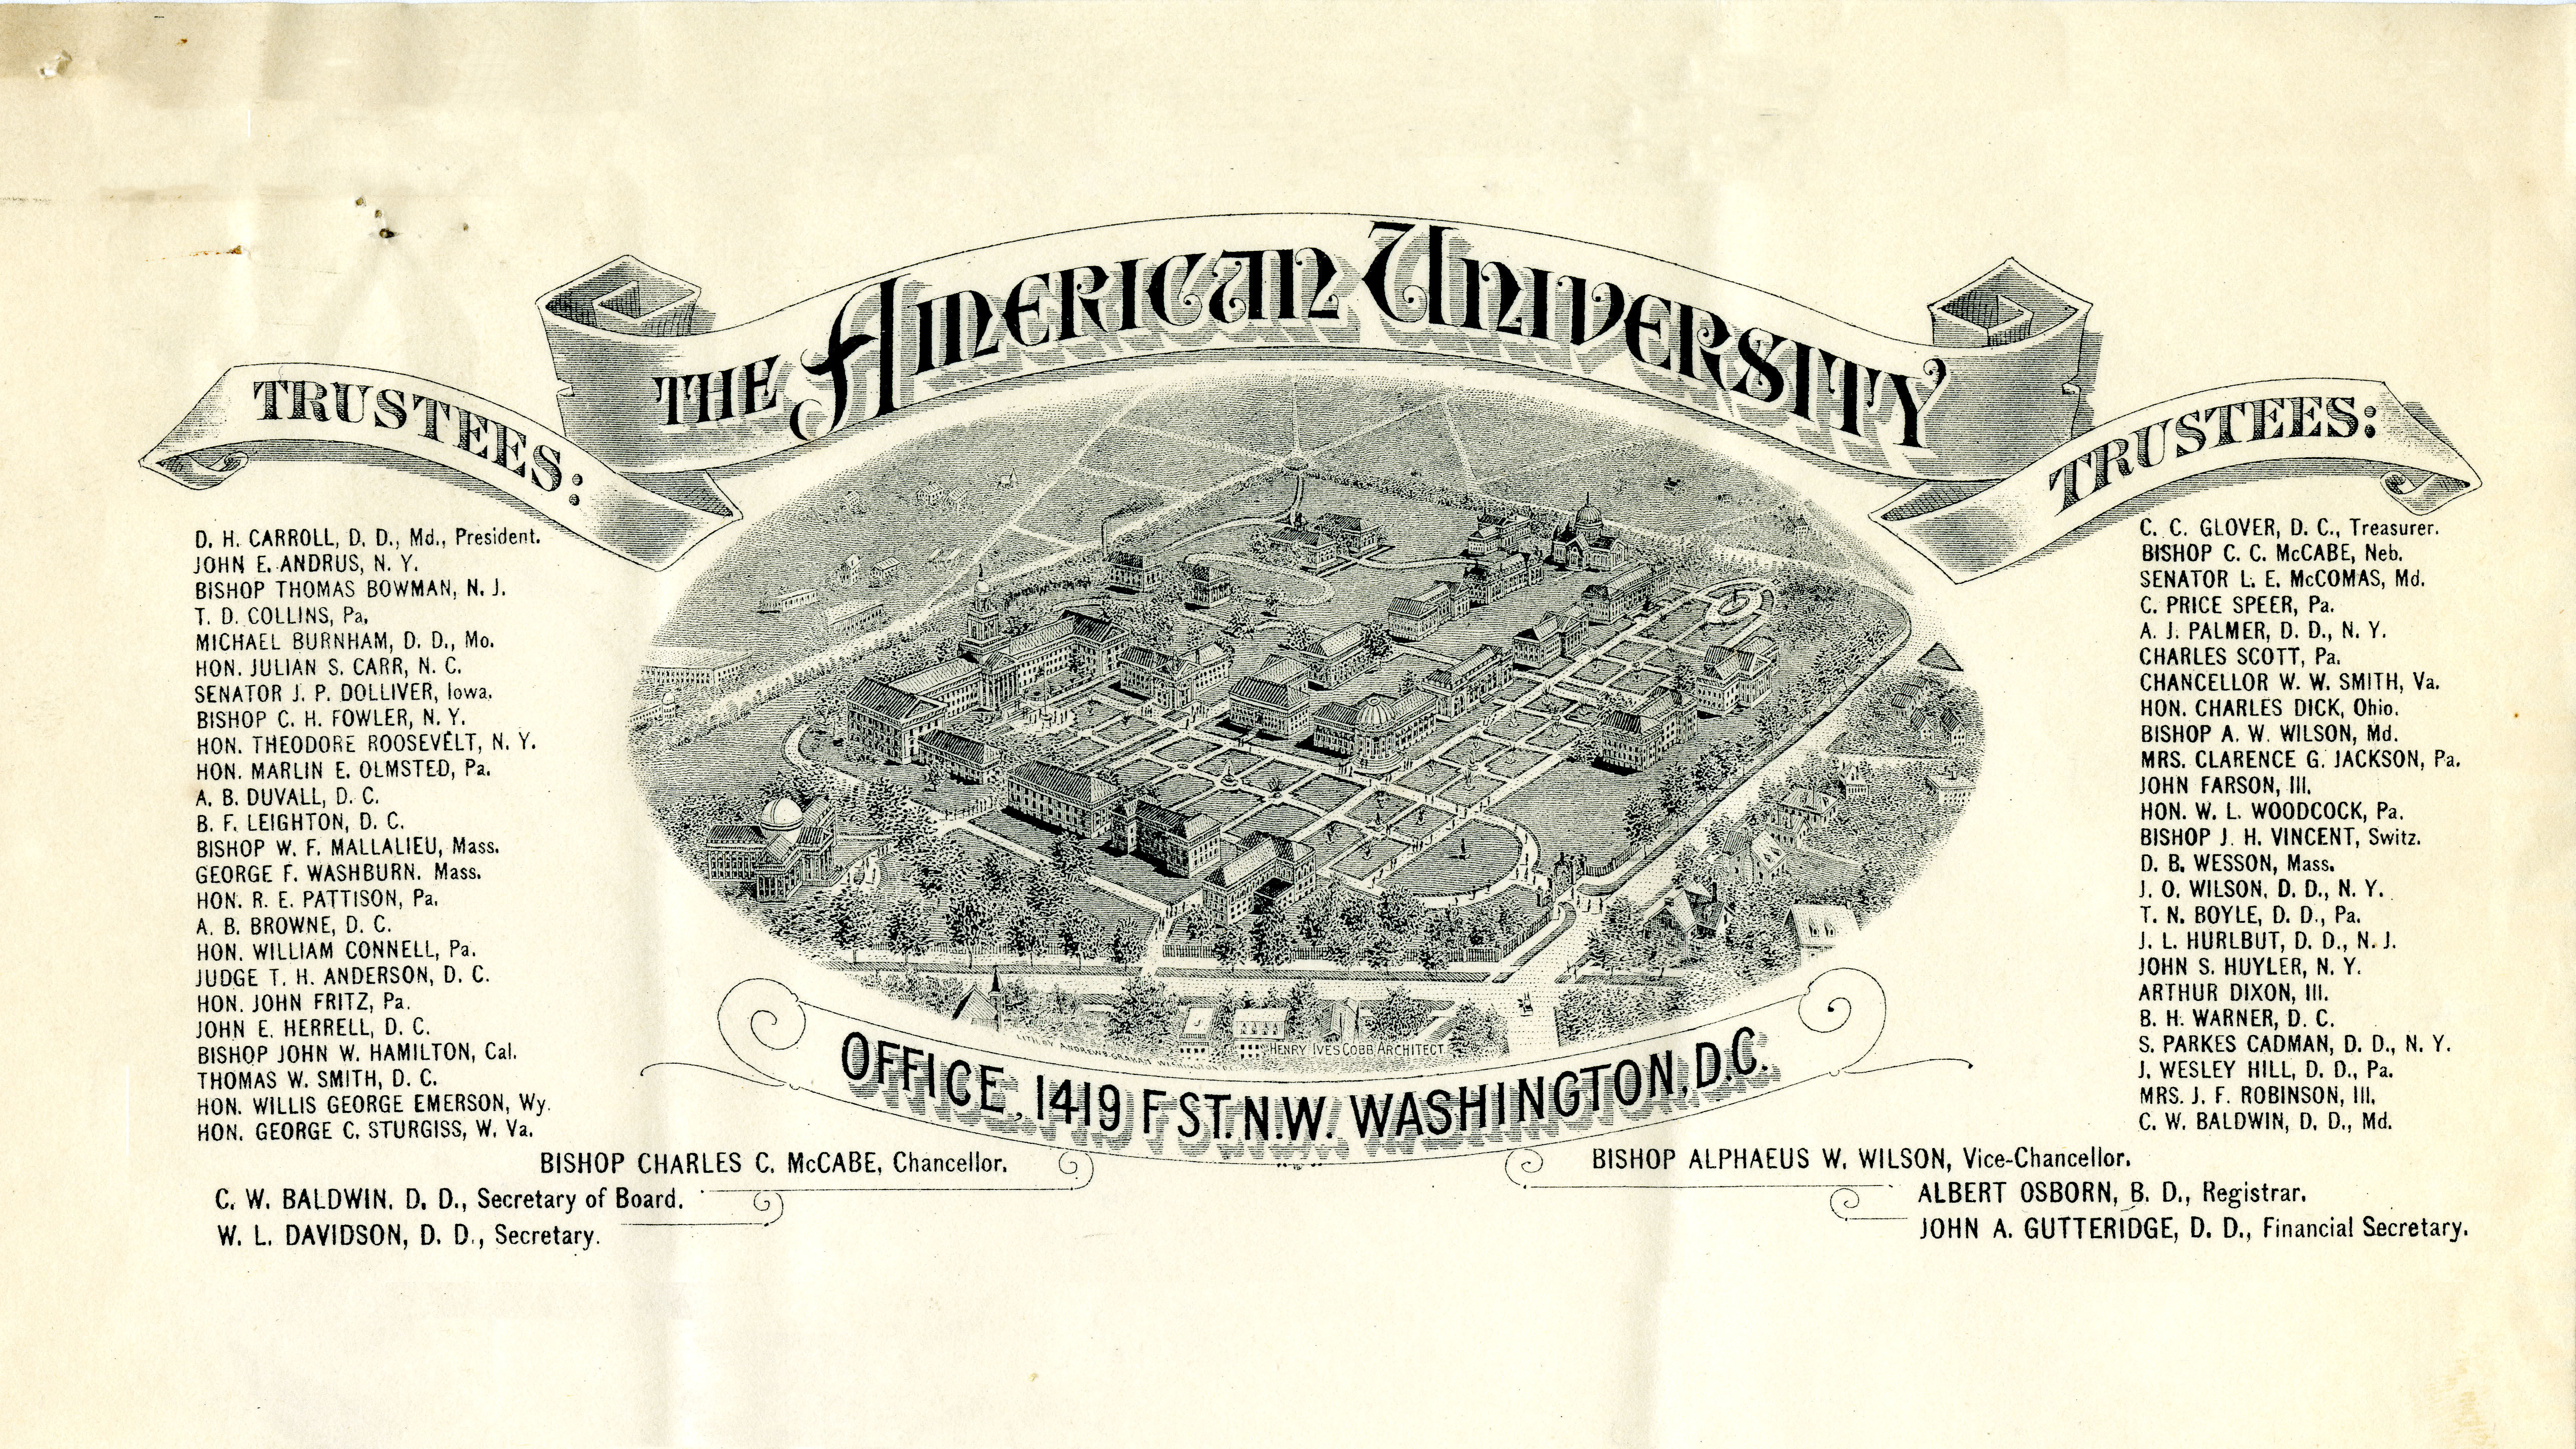 American University: The Formative Years